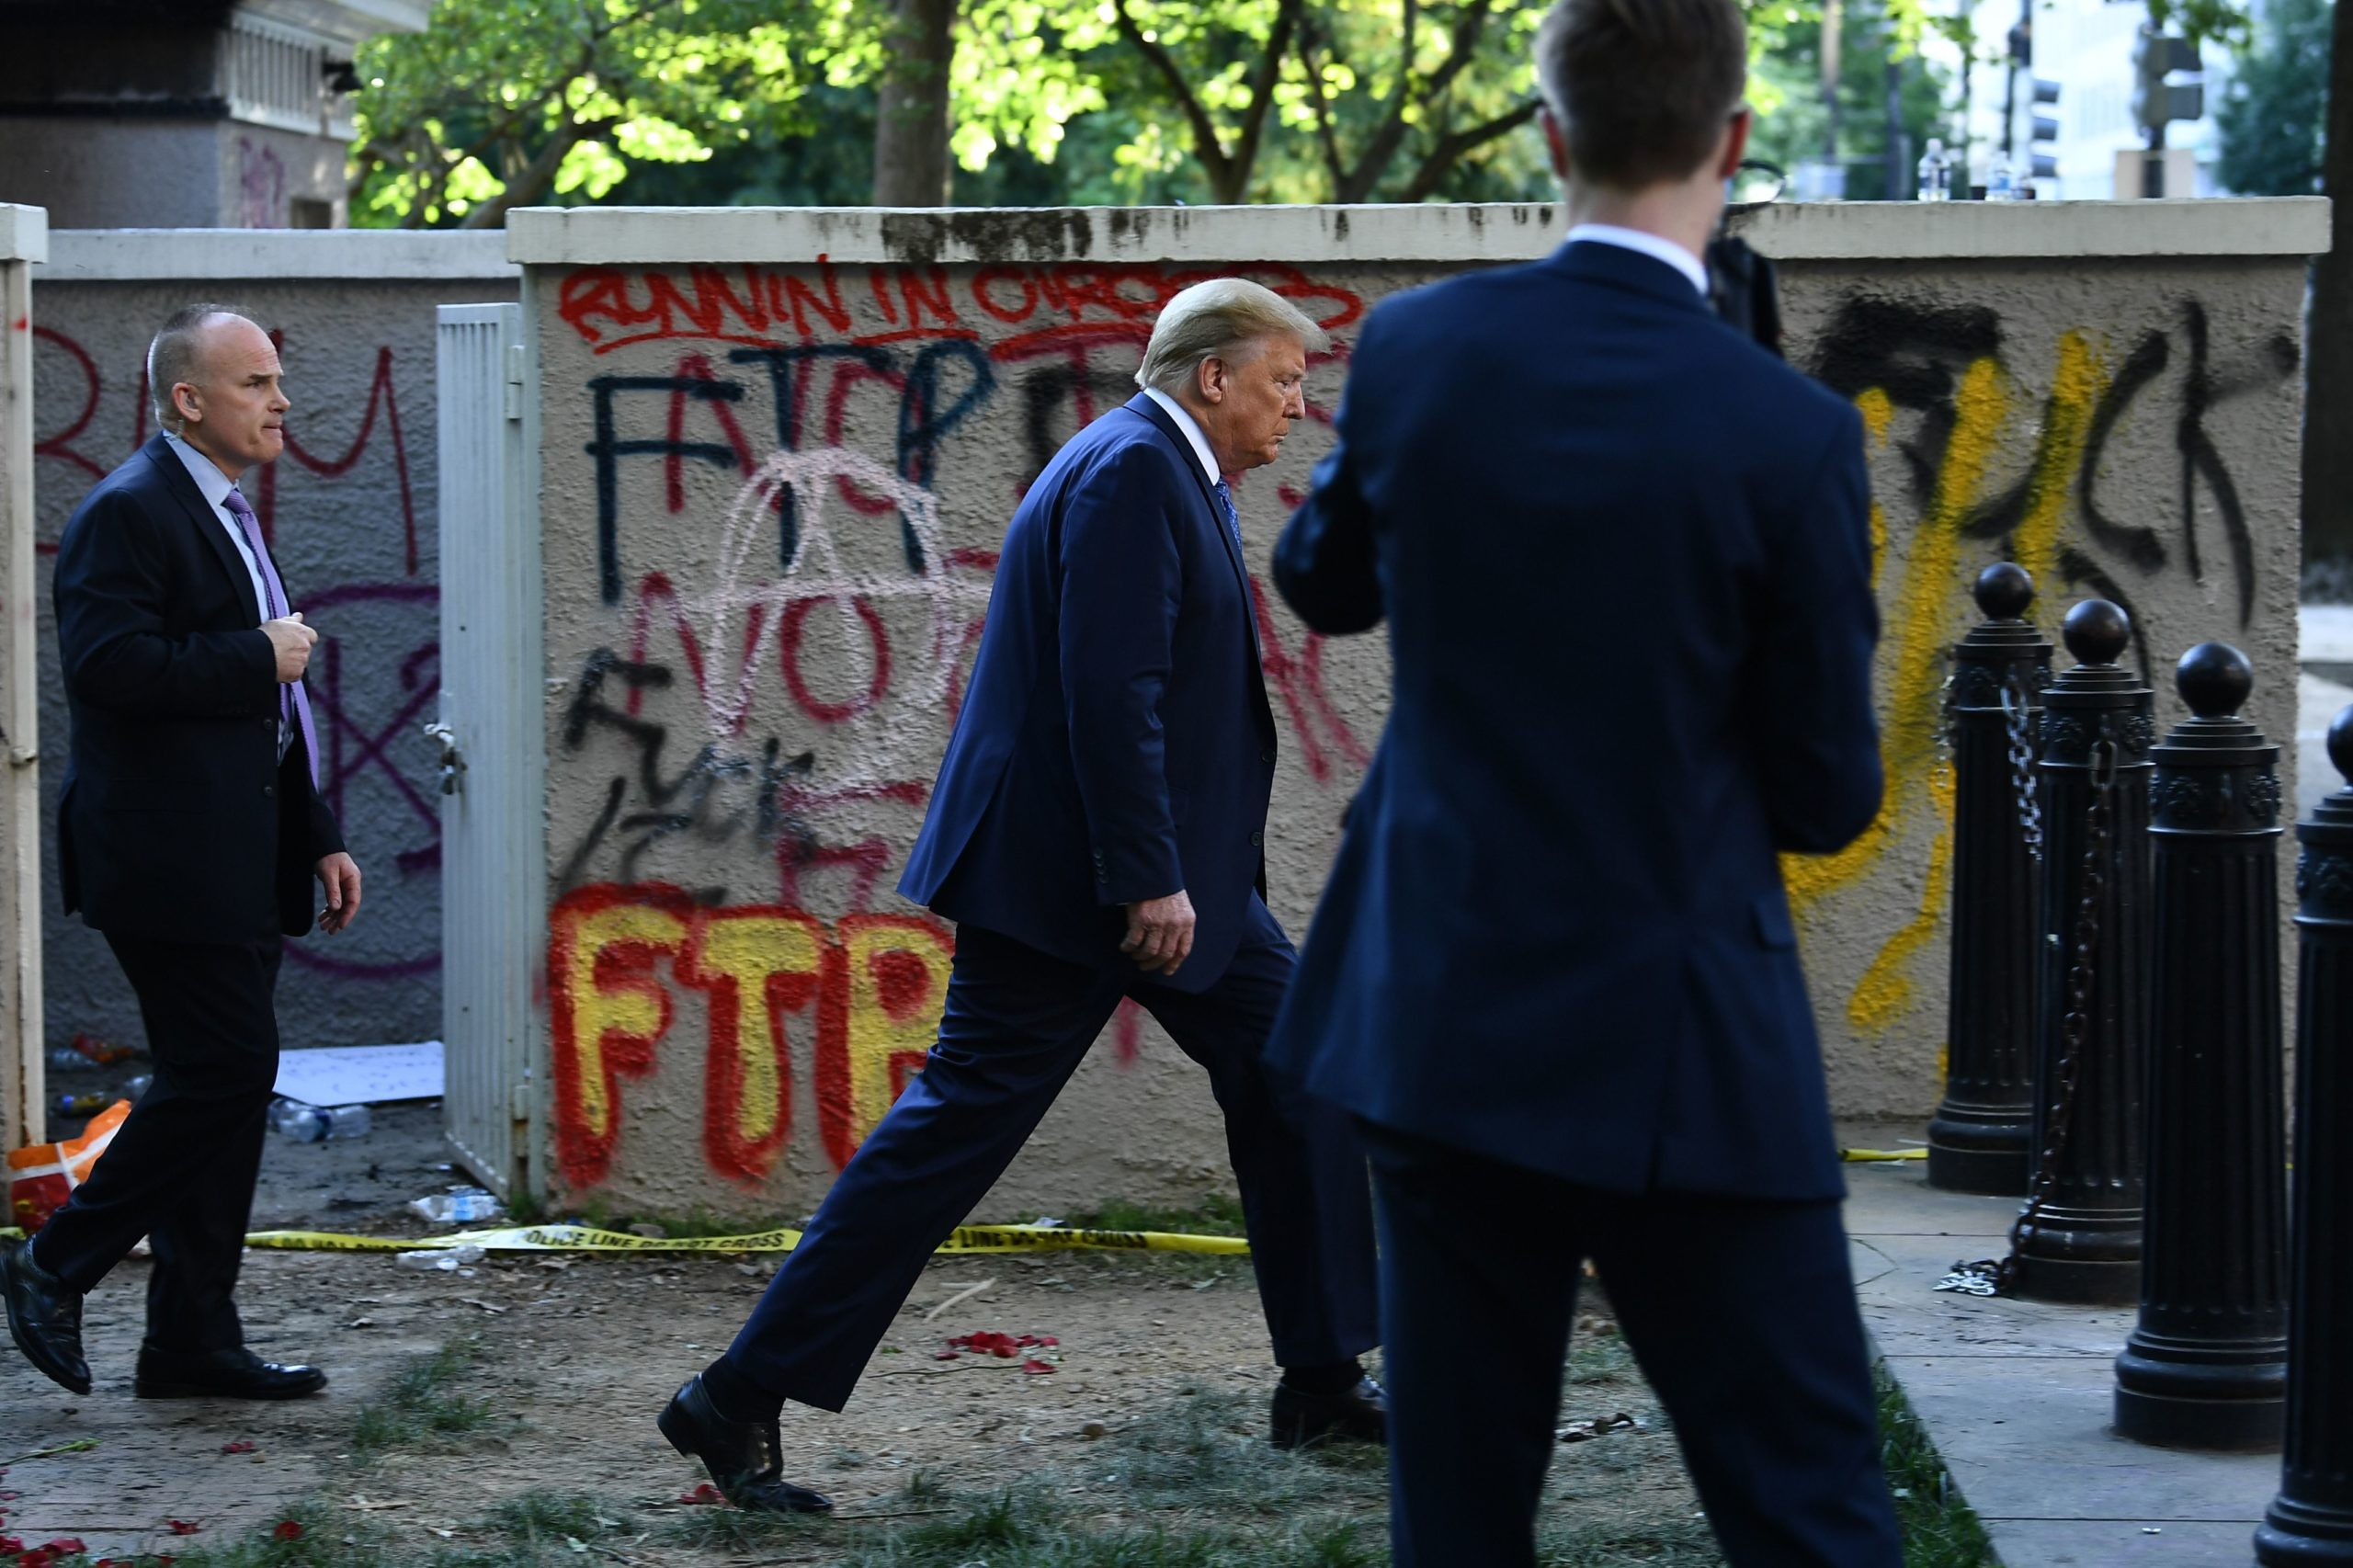 US President Donald Trump walks back to the White House escorted by the Secret Service after appearing outside of St John's Episcopal church across Lafayette Park in Washington, DC on June 1, 2020. (BRENDAN SMIALOWSKI/AFP via Getty Images)